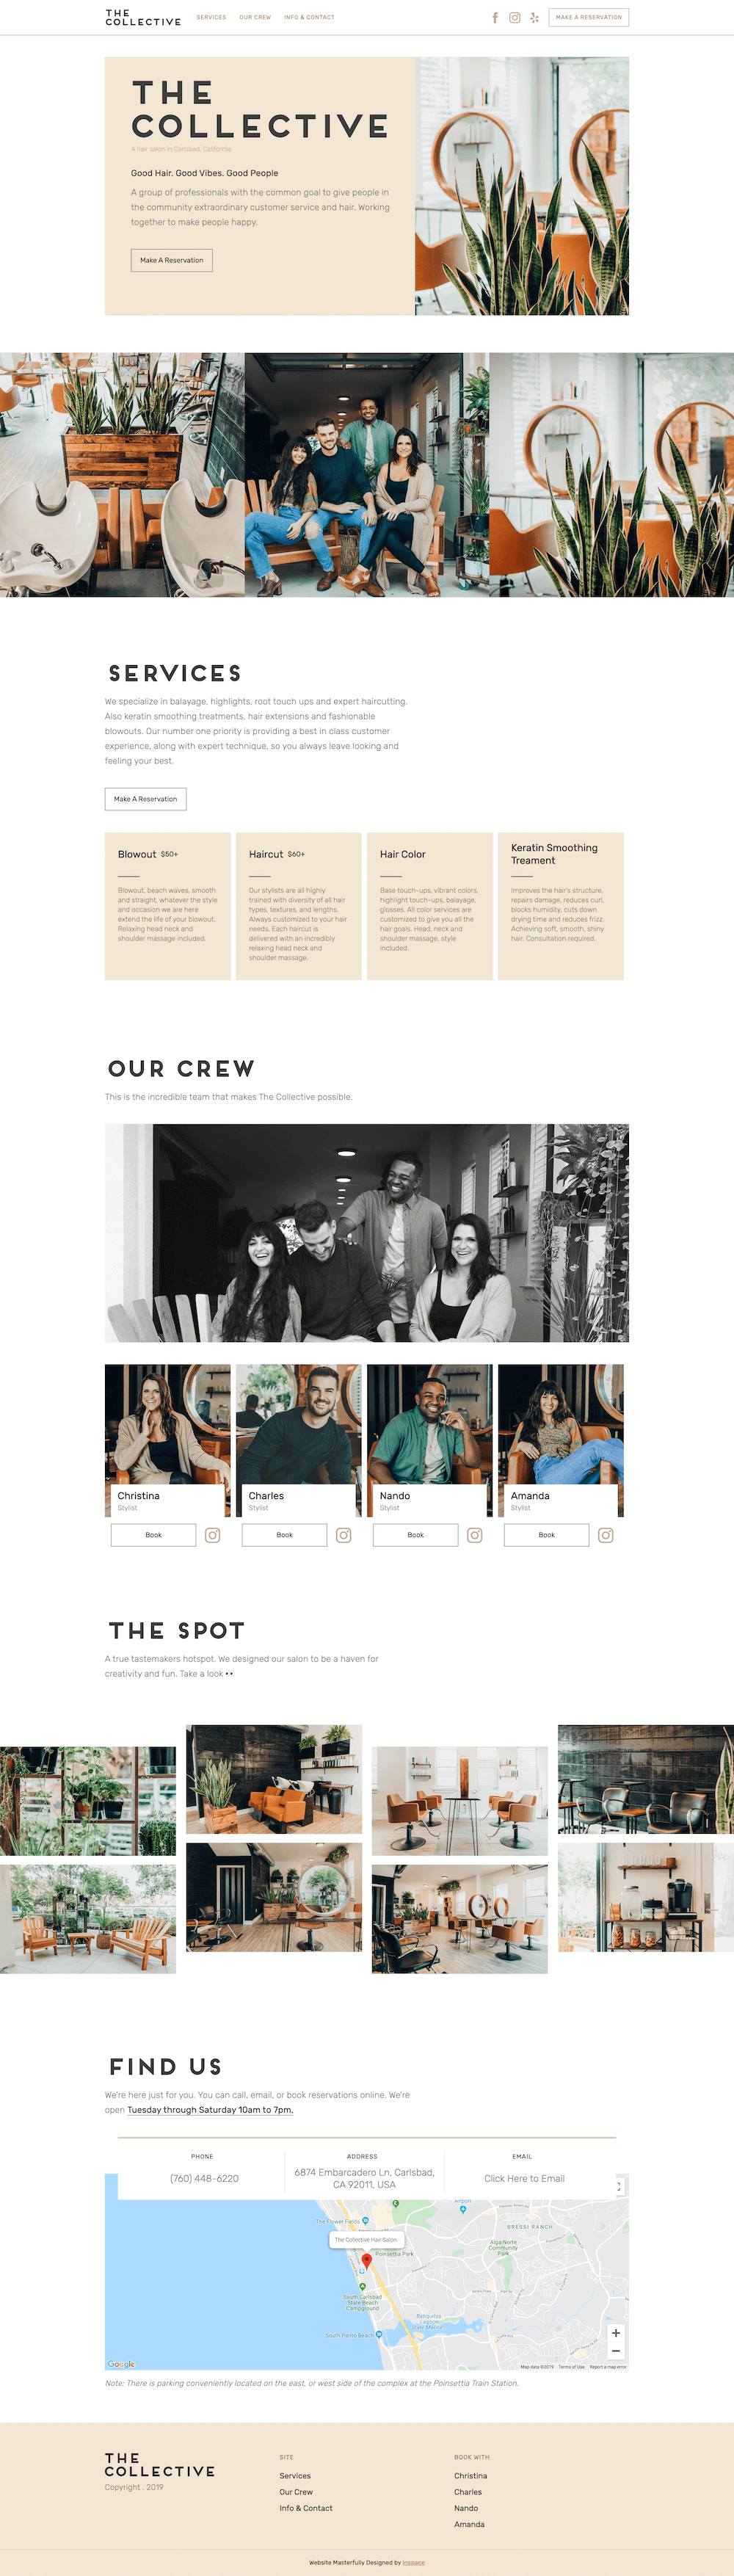 The Collective Hair Website Preview